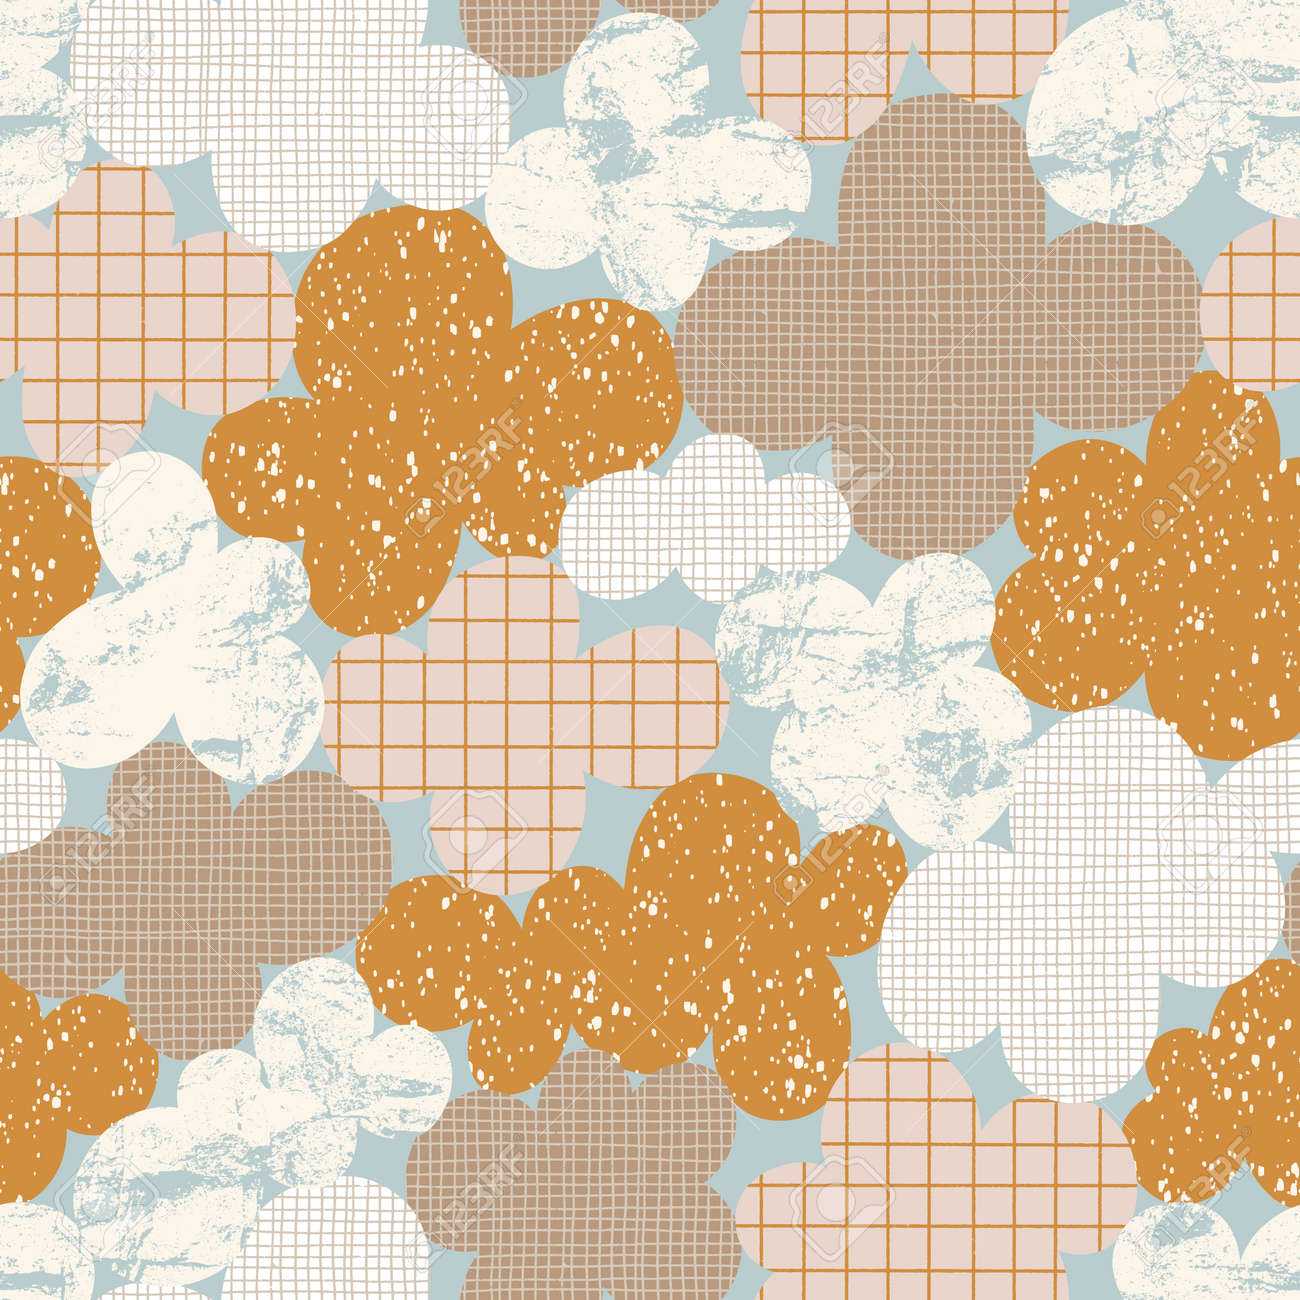 Abstract cloudscape, clouds with fun hand drawn textures, vintage vector seamless pattern - 170268195